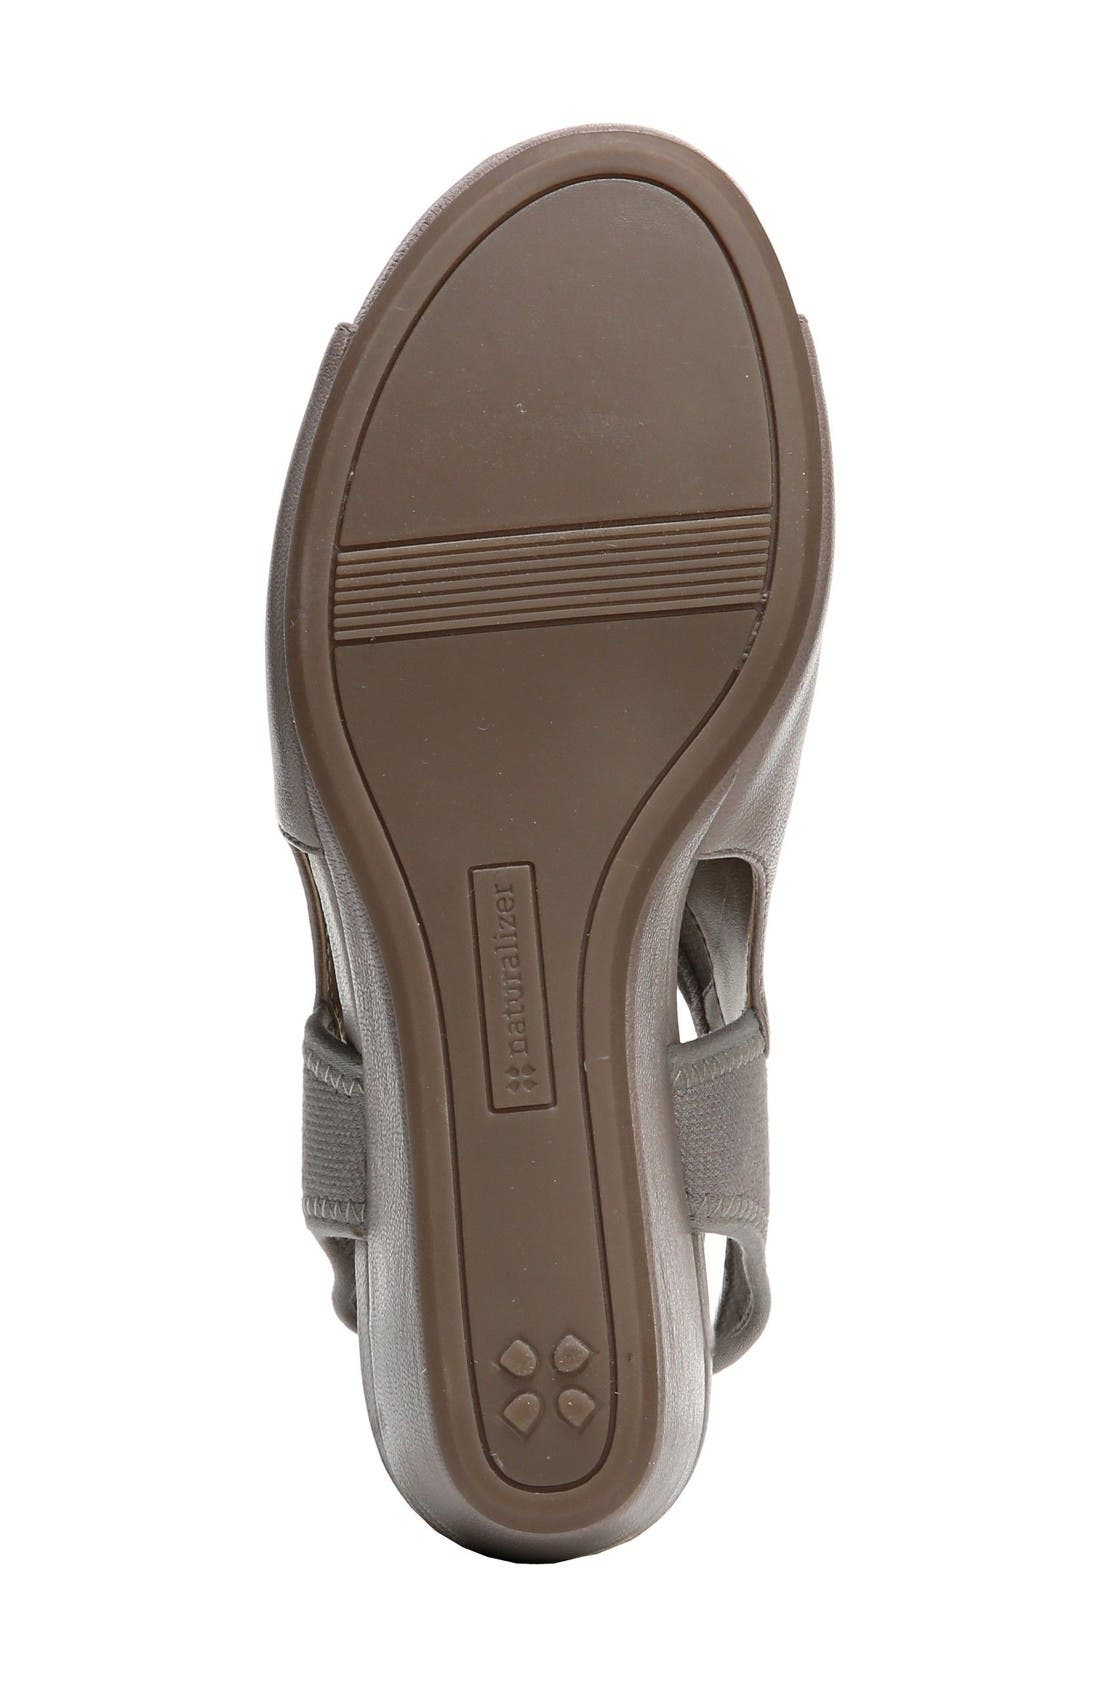 Cailla Shield Sandal,                             Alternate thumbnail 4, color,                             Grey Leather